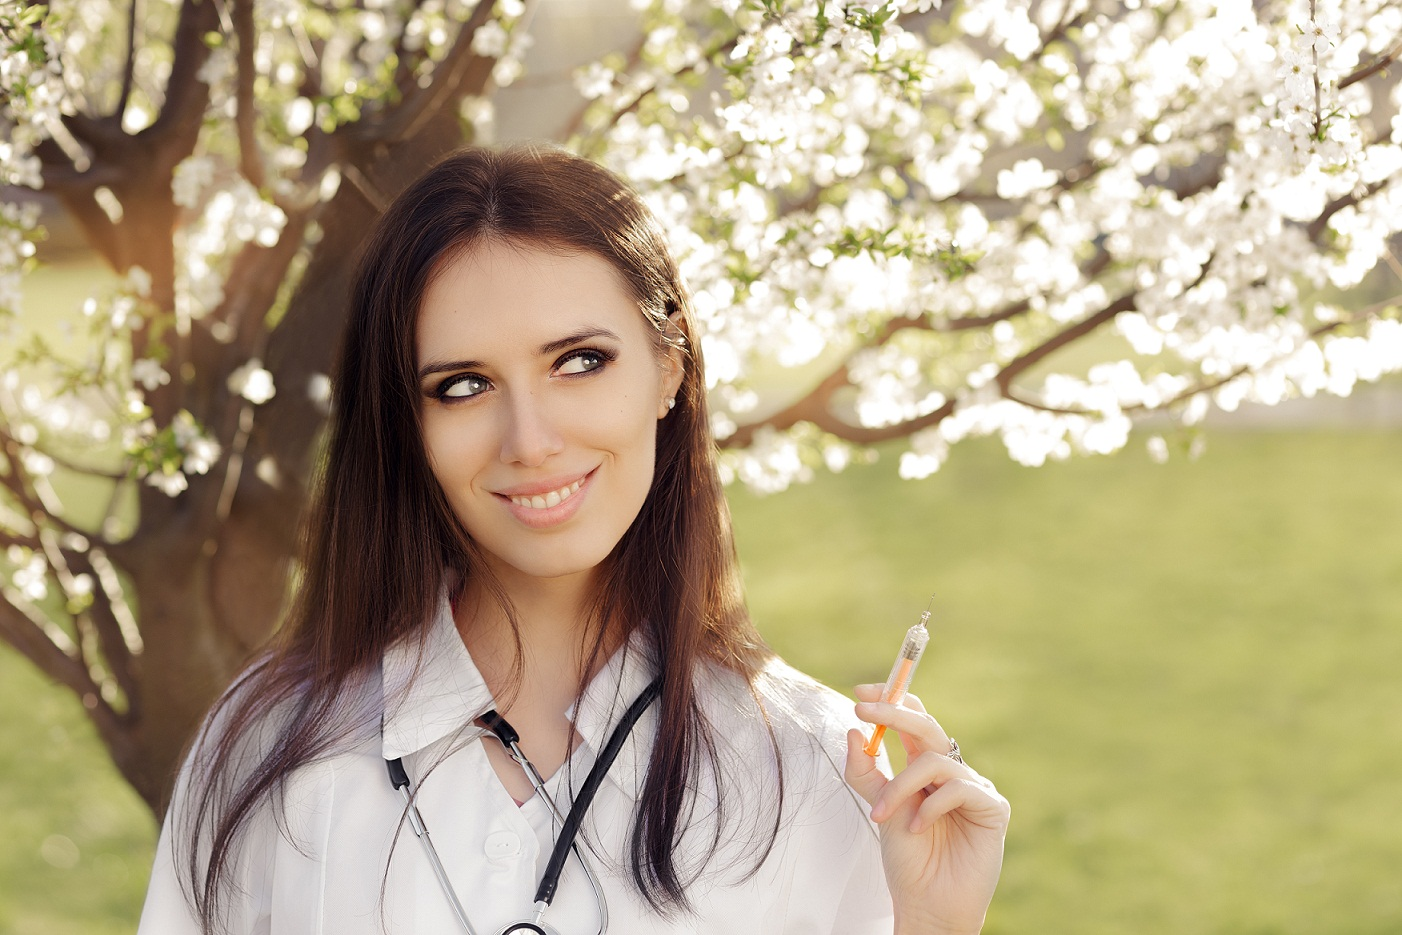 doctor holding a syringe next to a tree